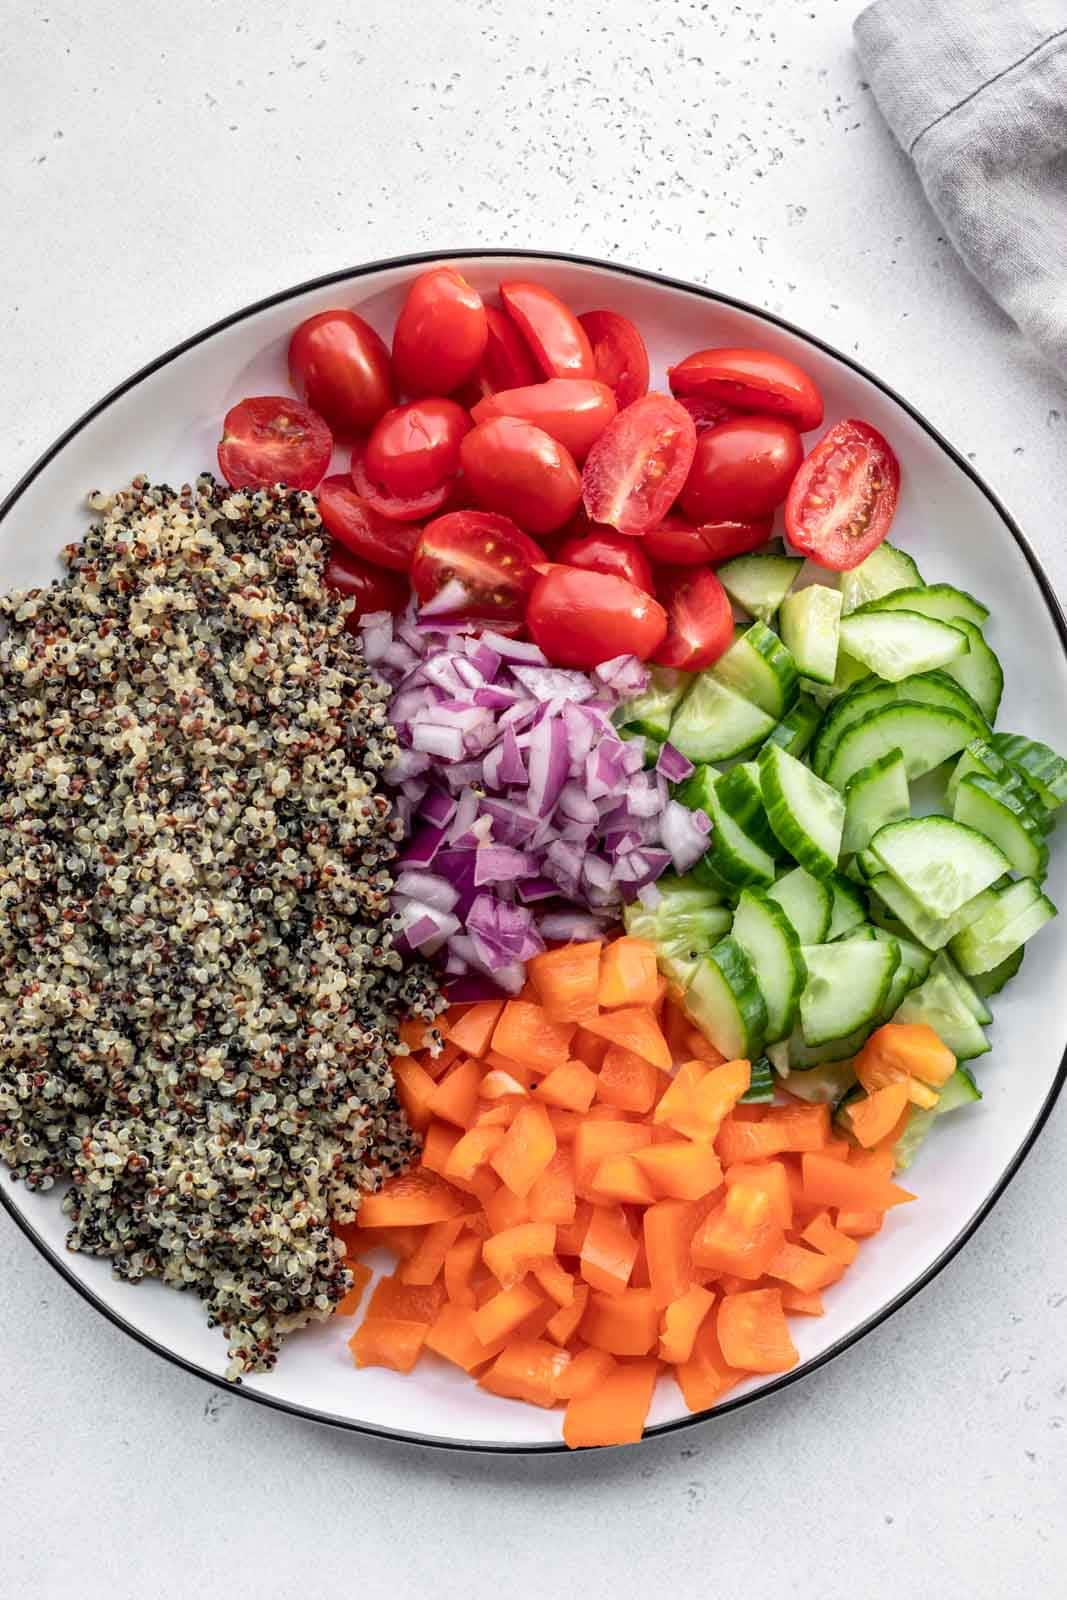 Platter of cooked quinoa, peppers, tomatoes and cucumber